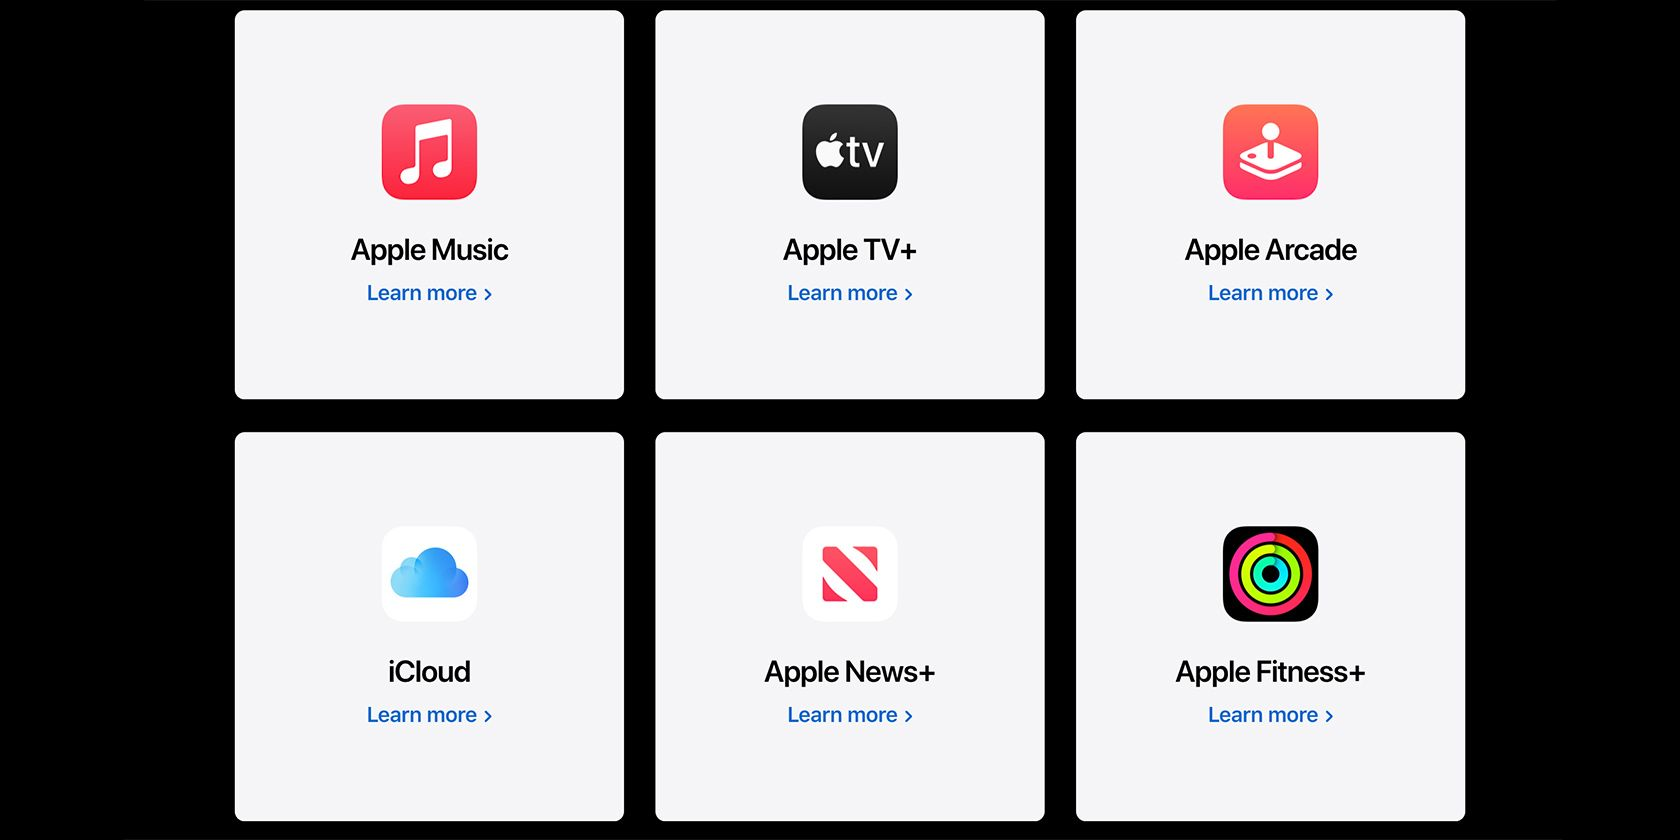 All the Free Trials Available for Different Apple Services